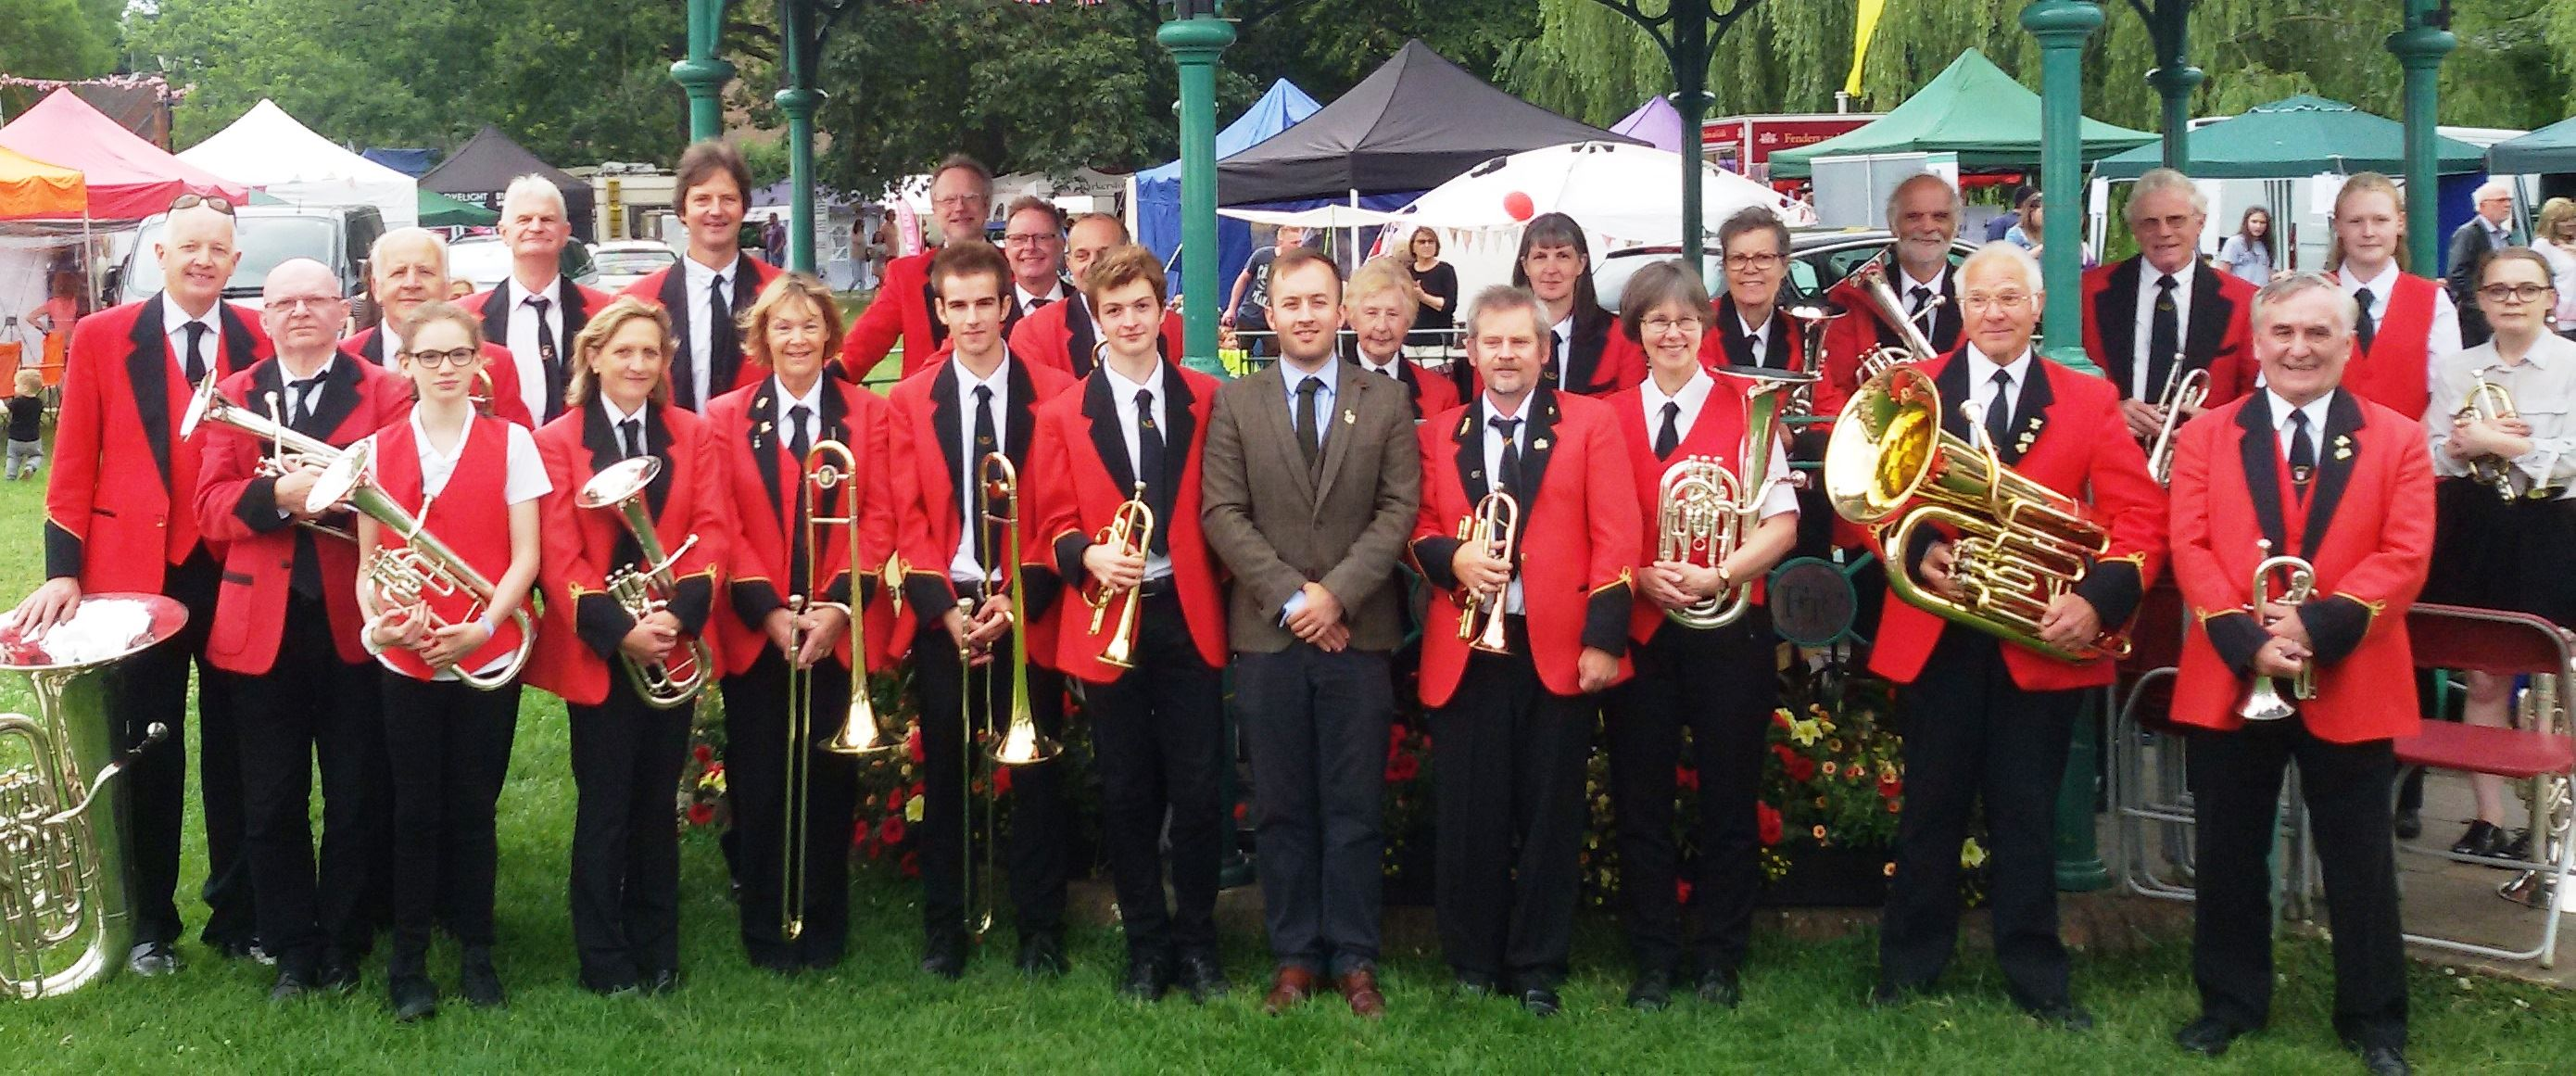 Farnham Brass Band in Gostrey Meadows July 2017